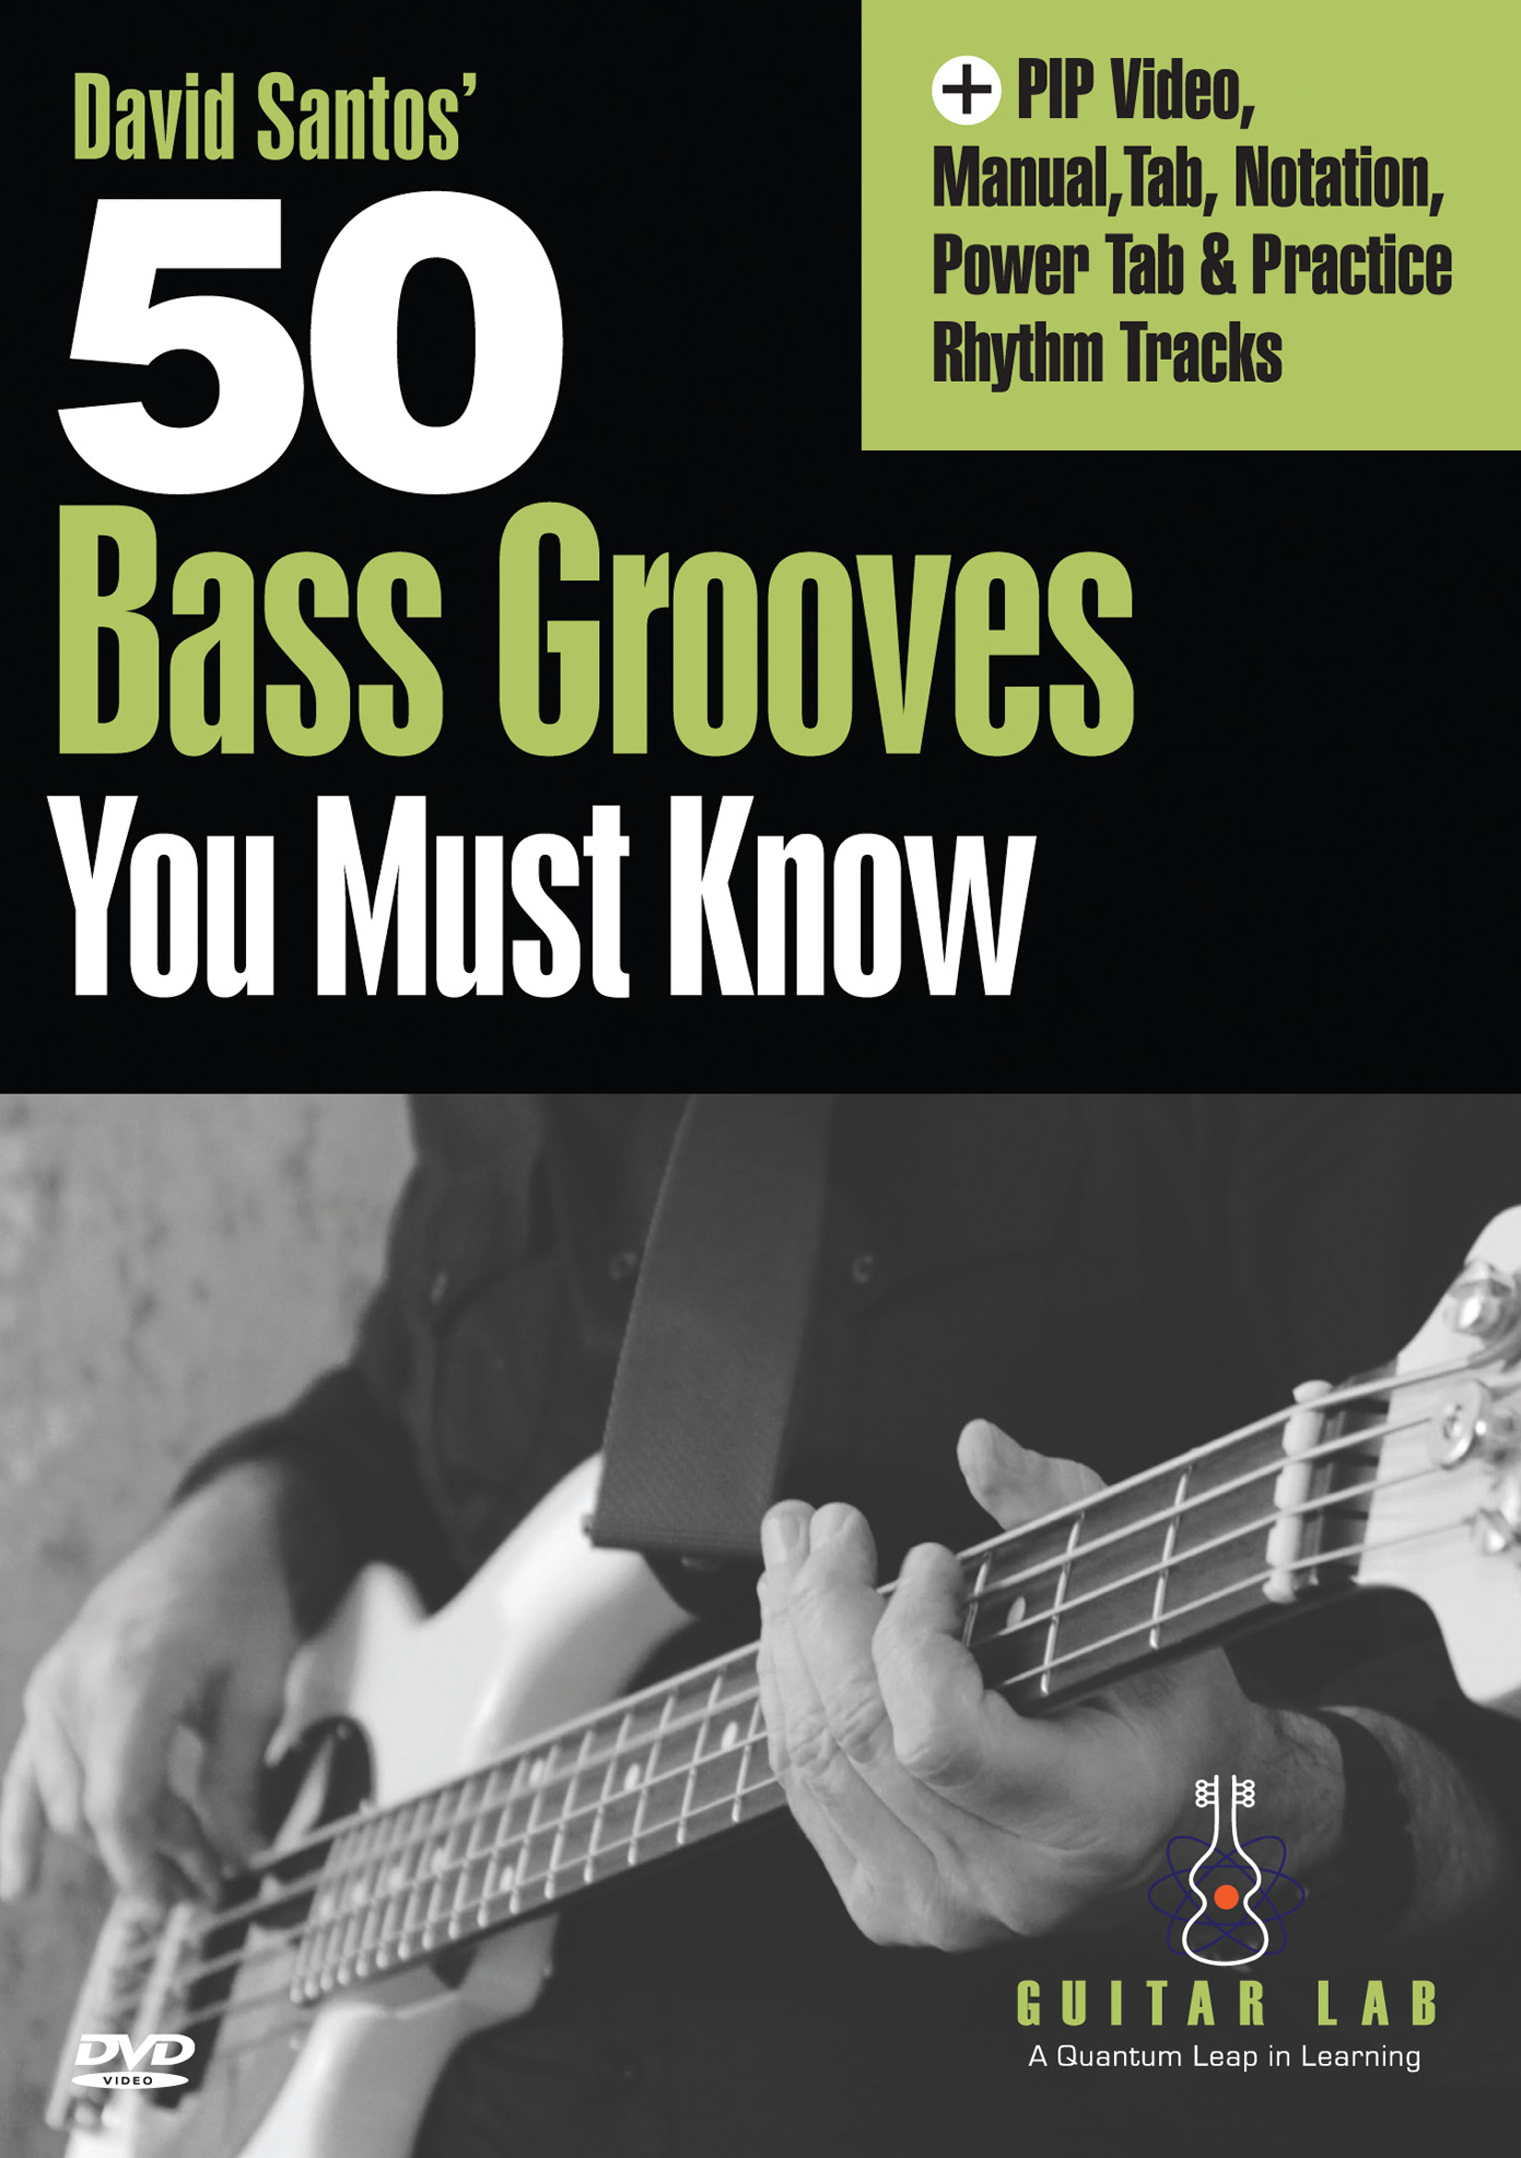 David Santos' 50 Bass Grooves You Must Know